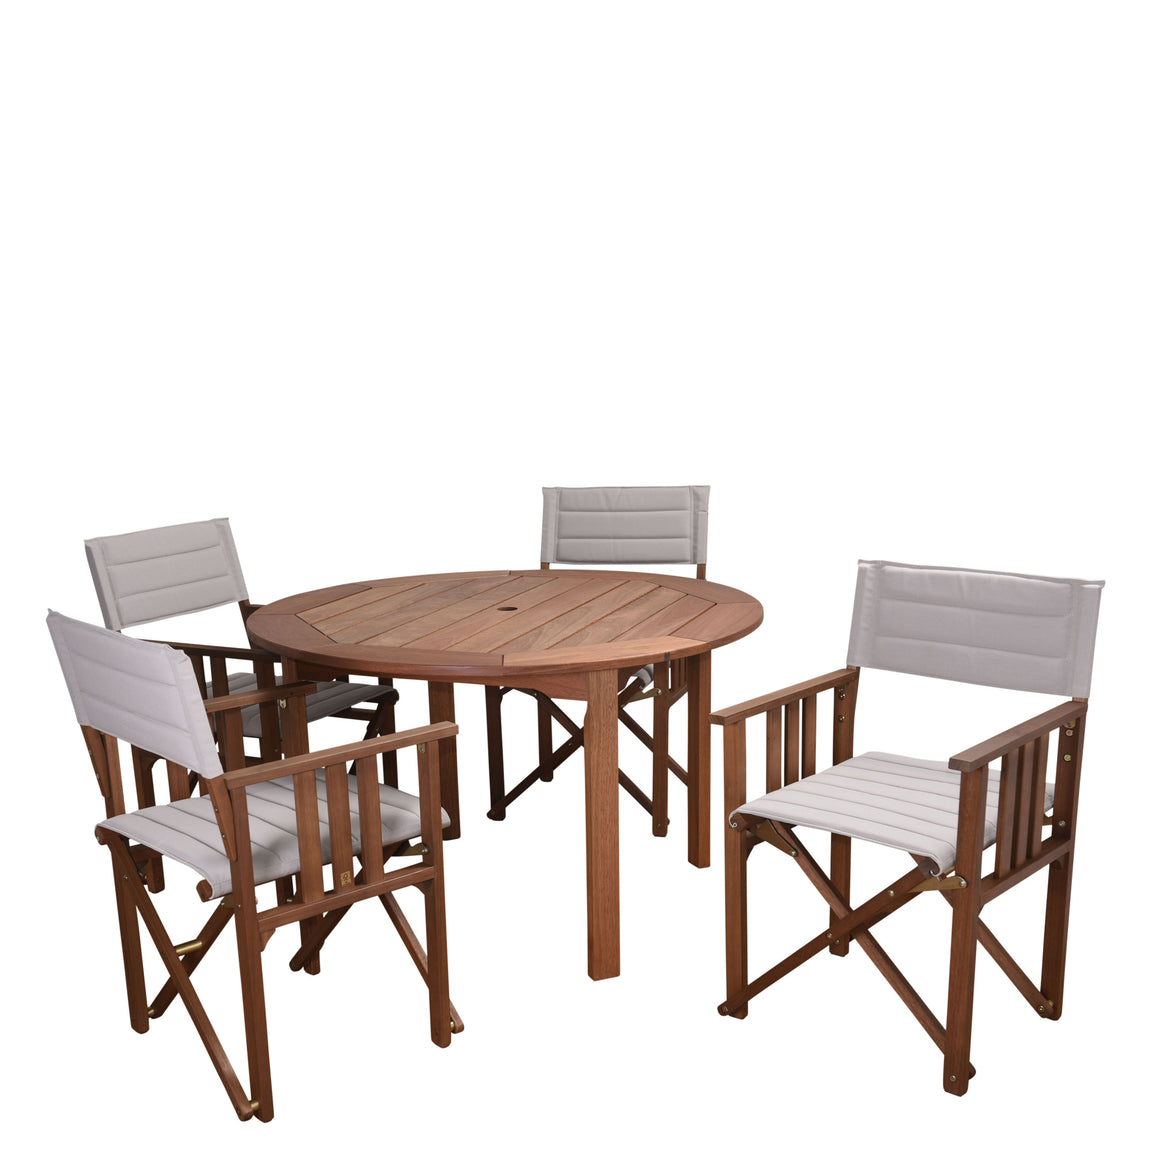 Amazonia Panama 5 Piece Patio Round Dining Set , International Home Miami- grayburd